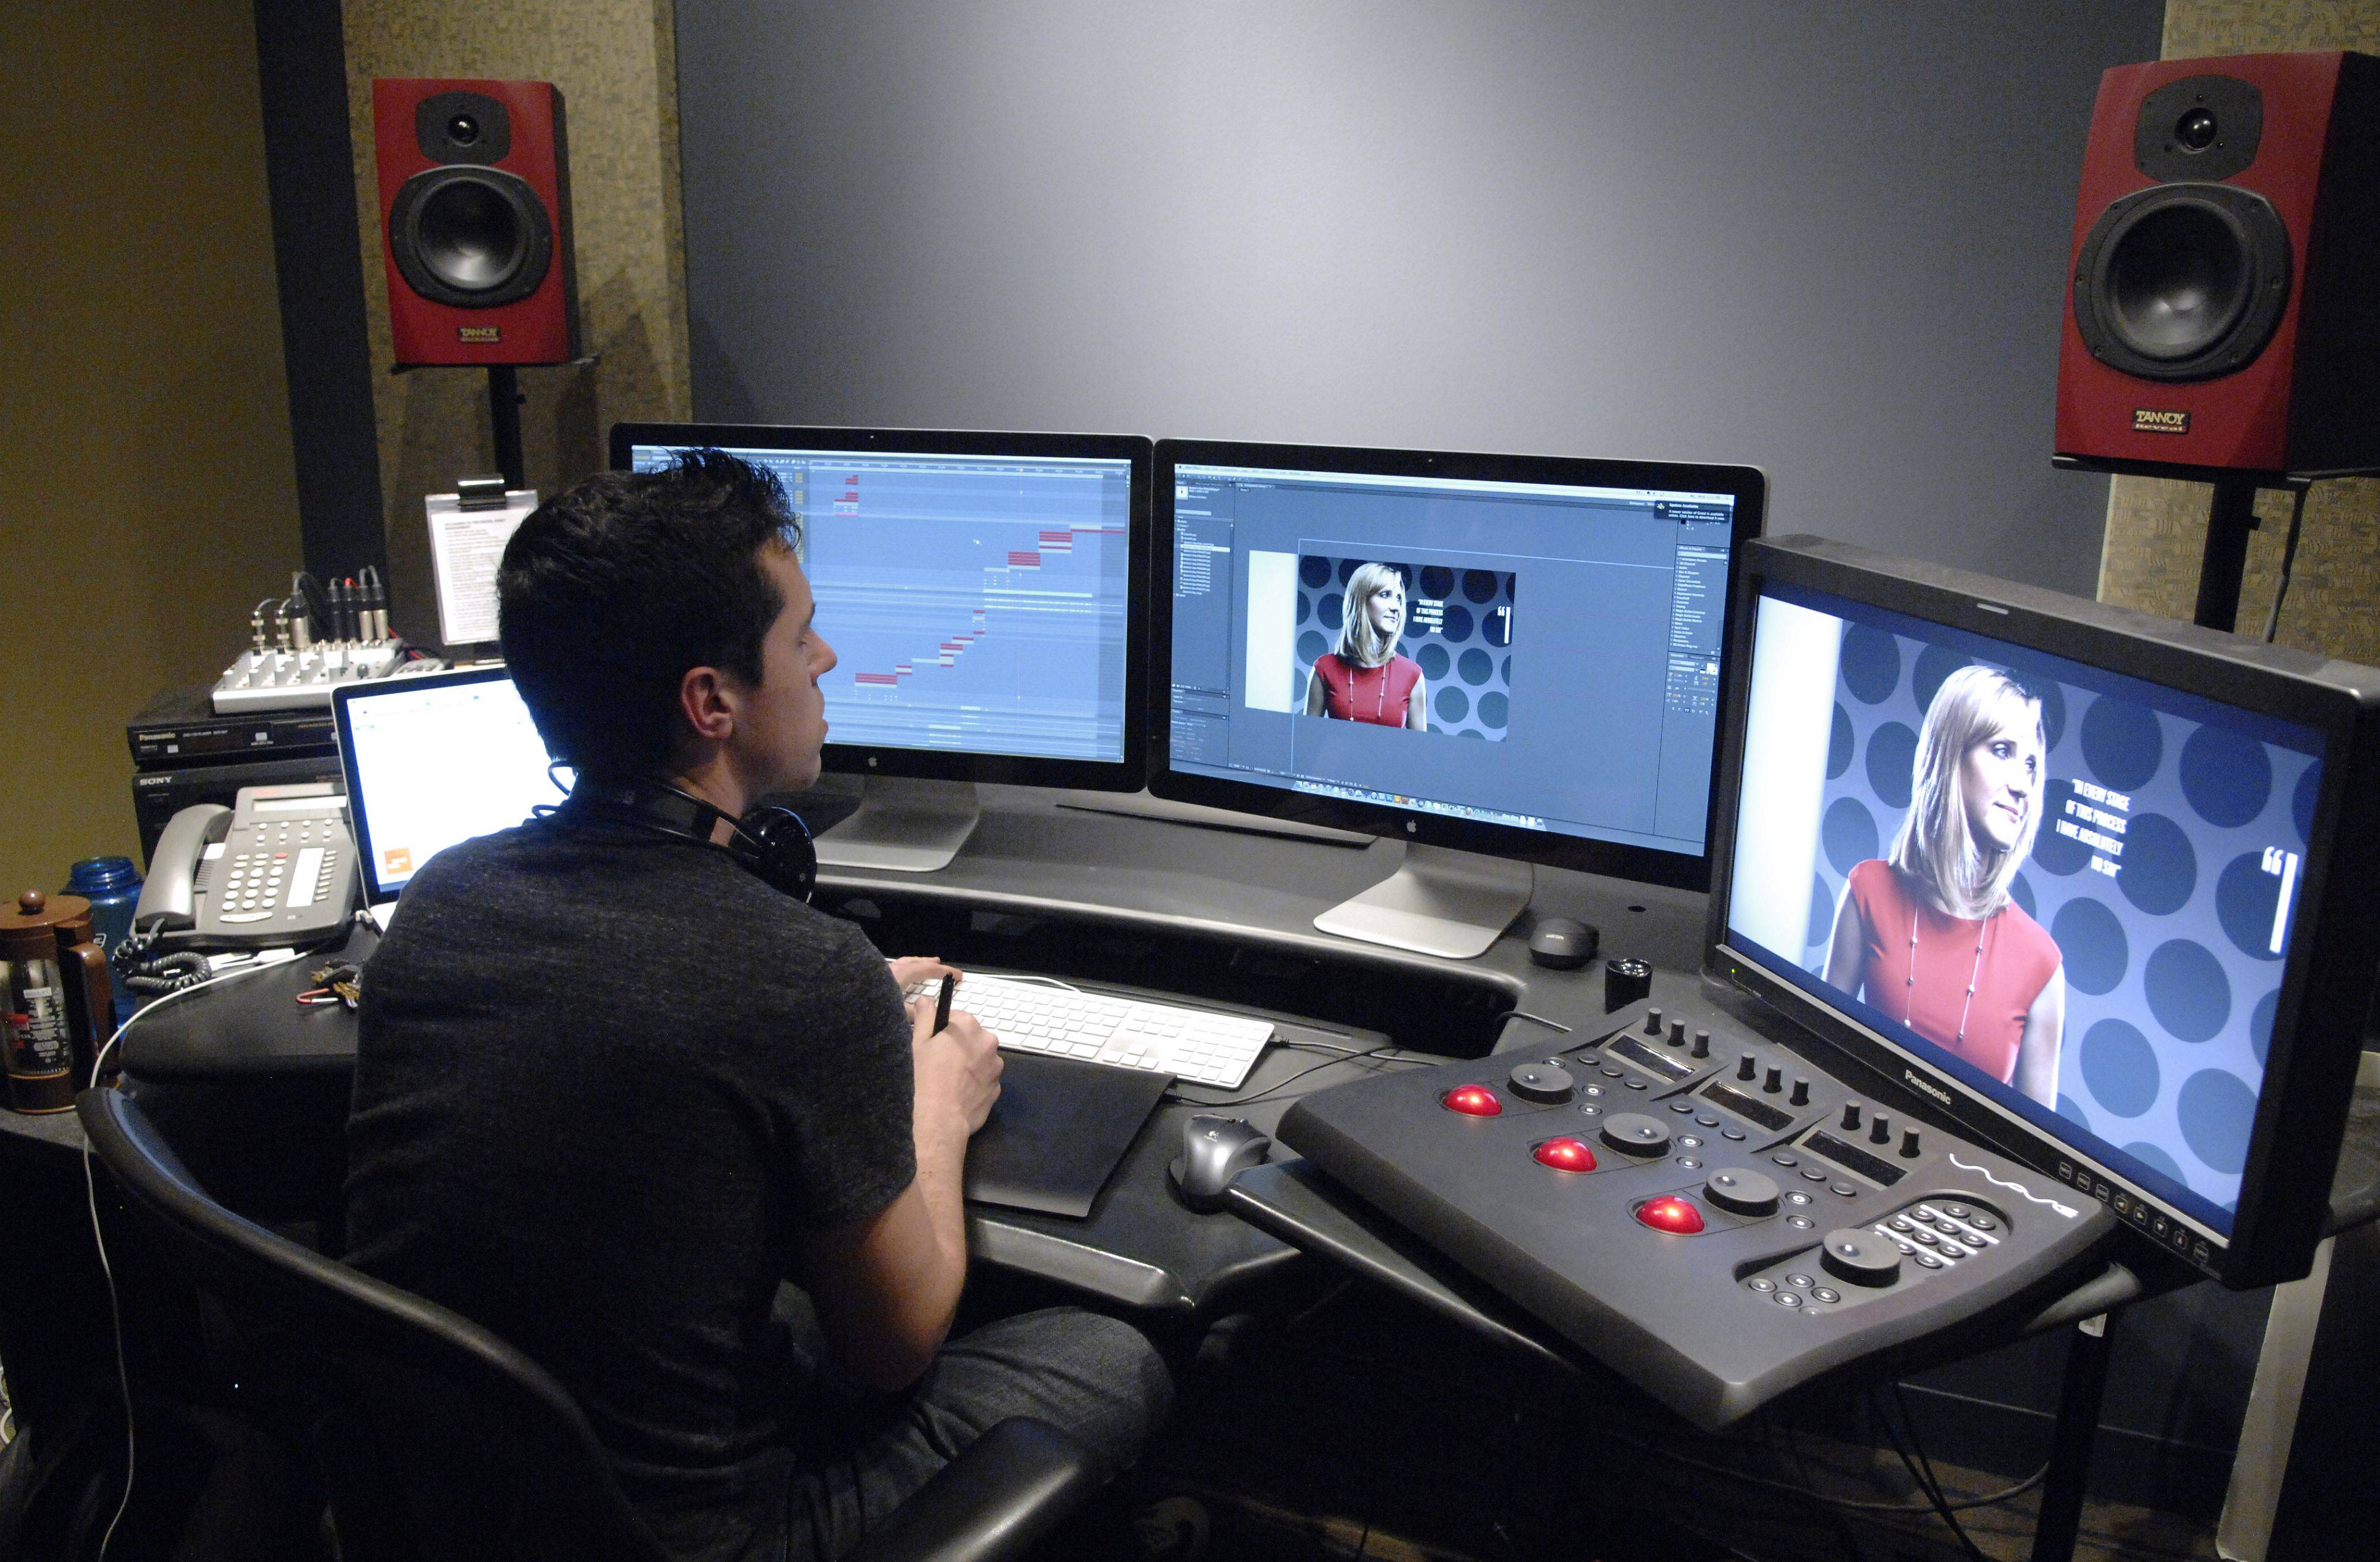 Video producer/editor Bjorn Amundsen works in one of the video editing suites at Willow Creek Church in South Barrington.